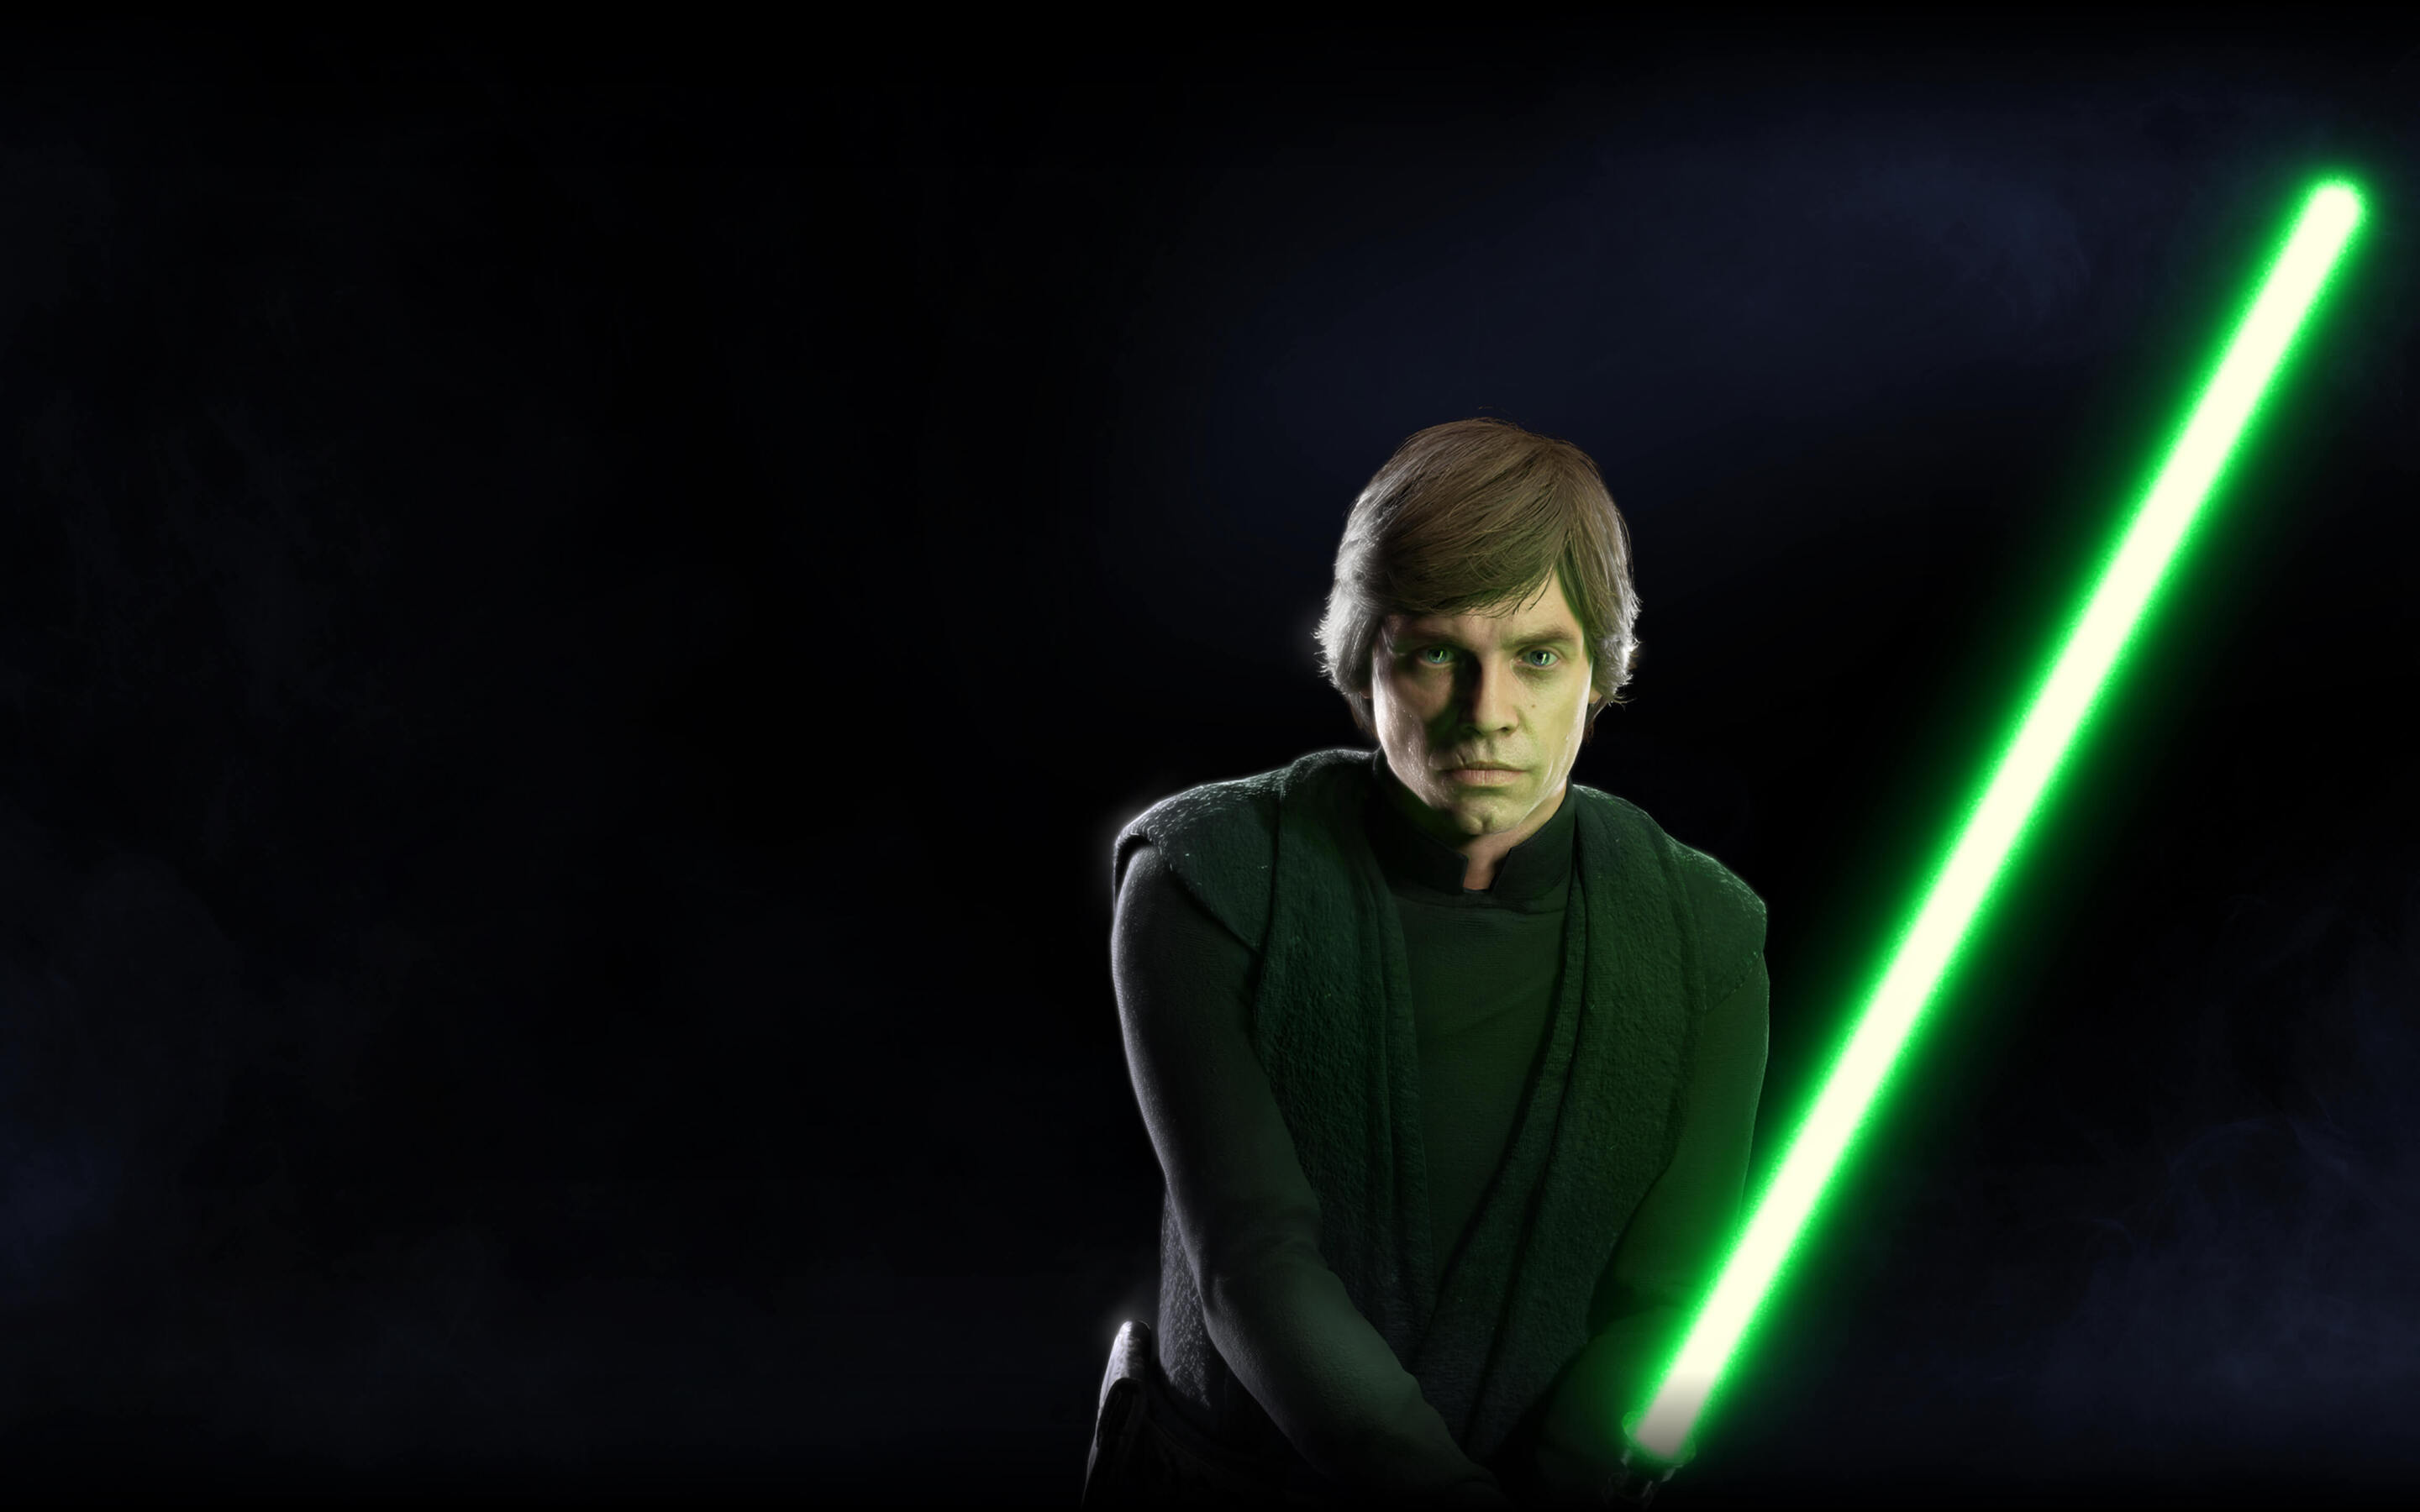 2880x1800 Luke Skywalker Star Wars Battlefront 2 Macbook